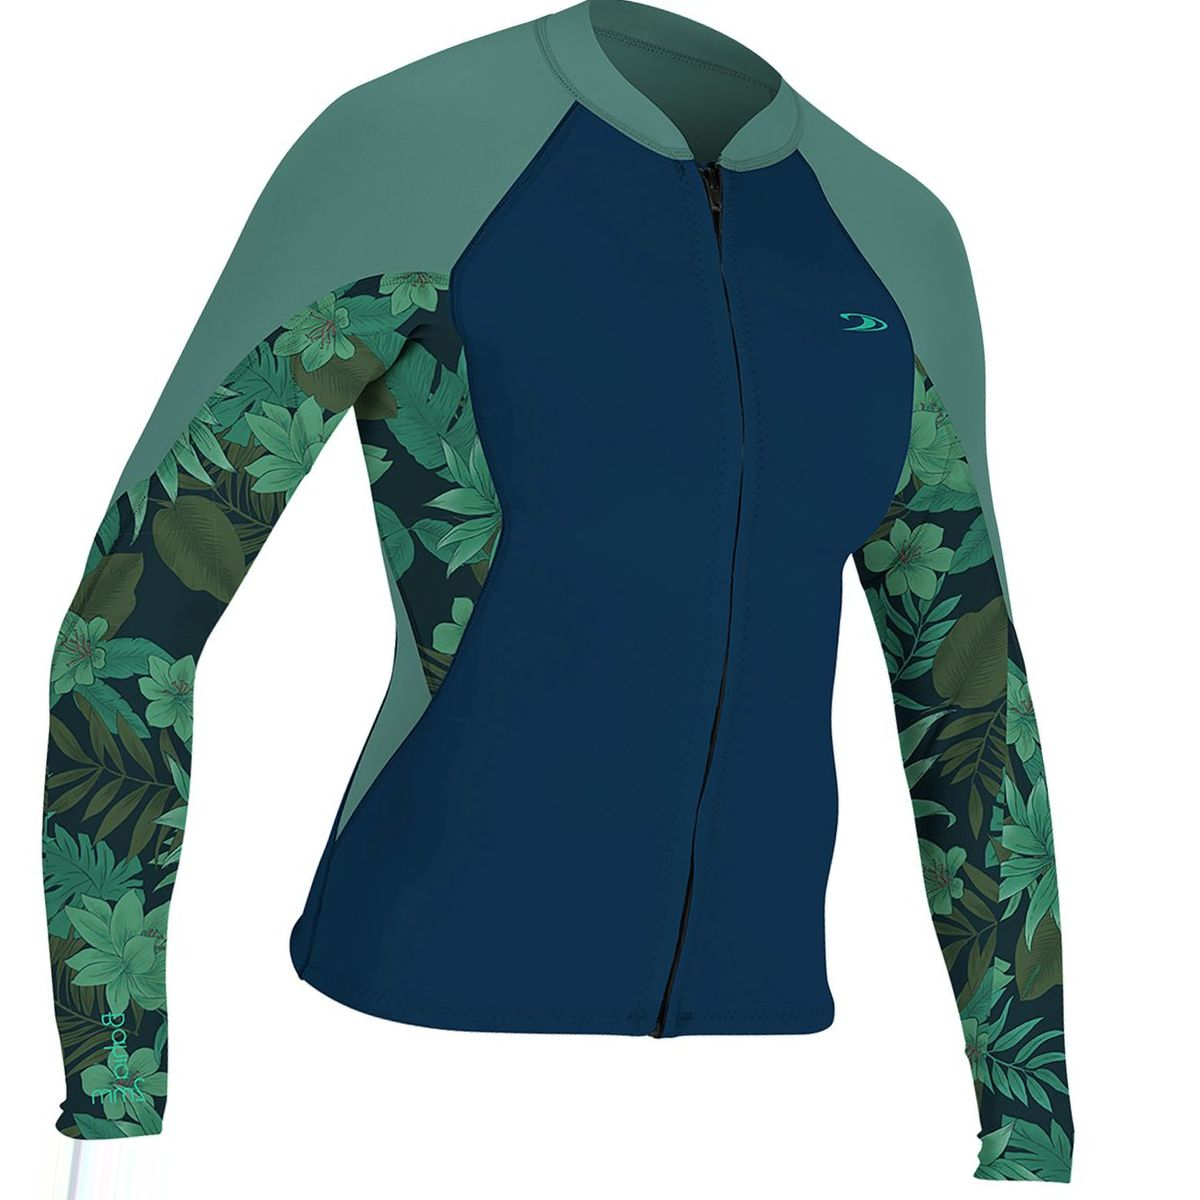 O'Neill Bahia Full-Zip Jacket - Women's